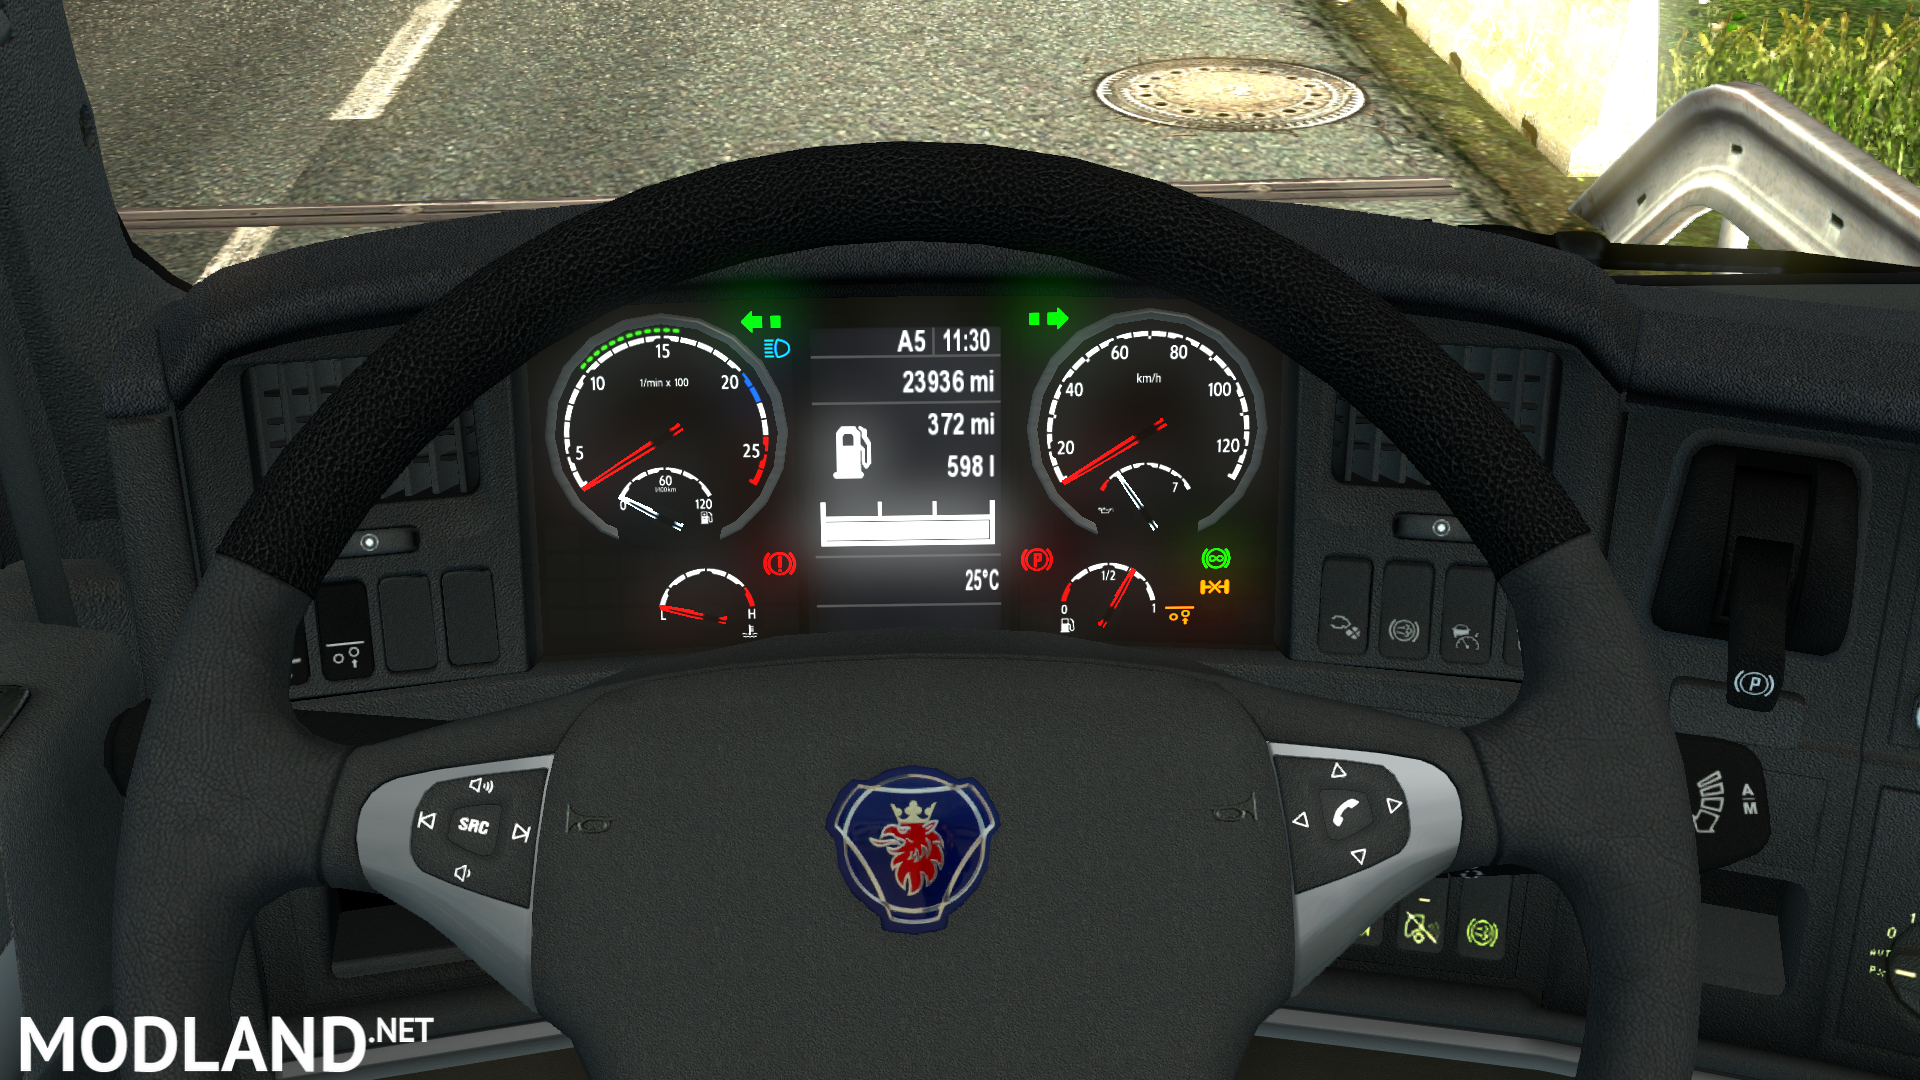 Scania high-def interior gauges & emblem mod for ETS 2